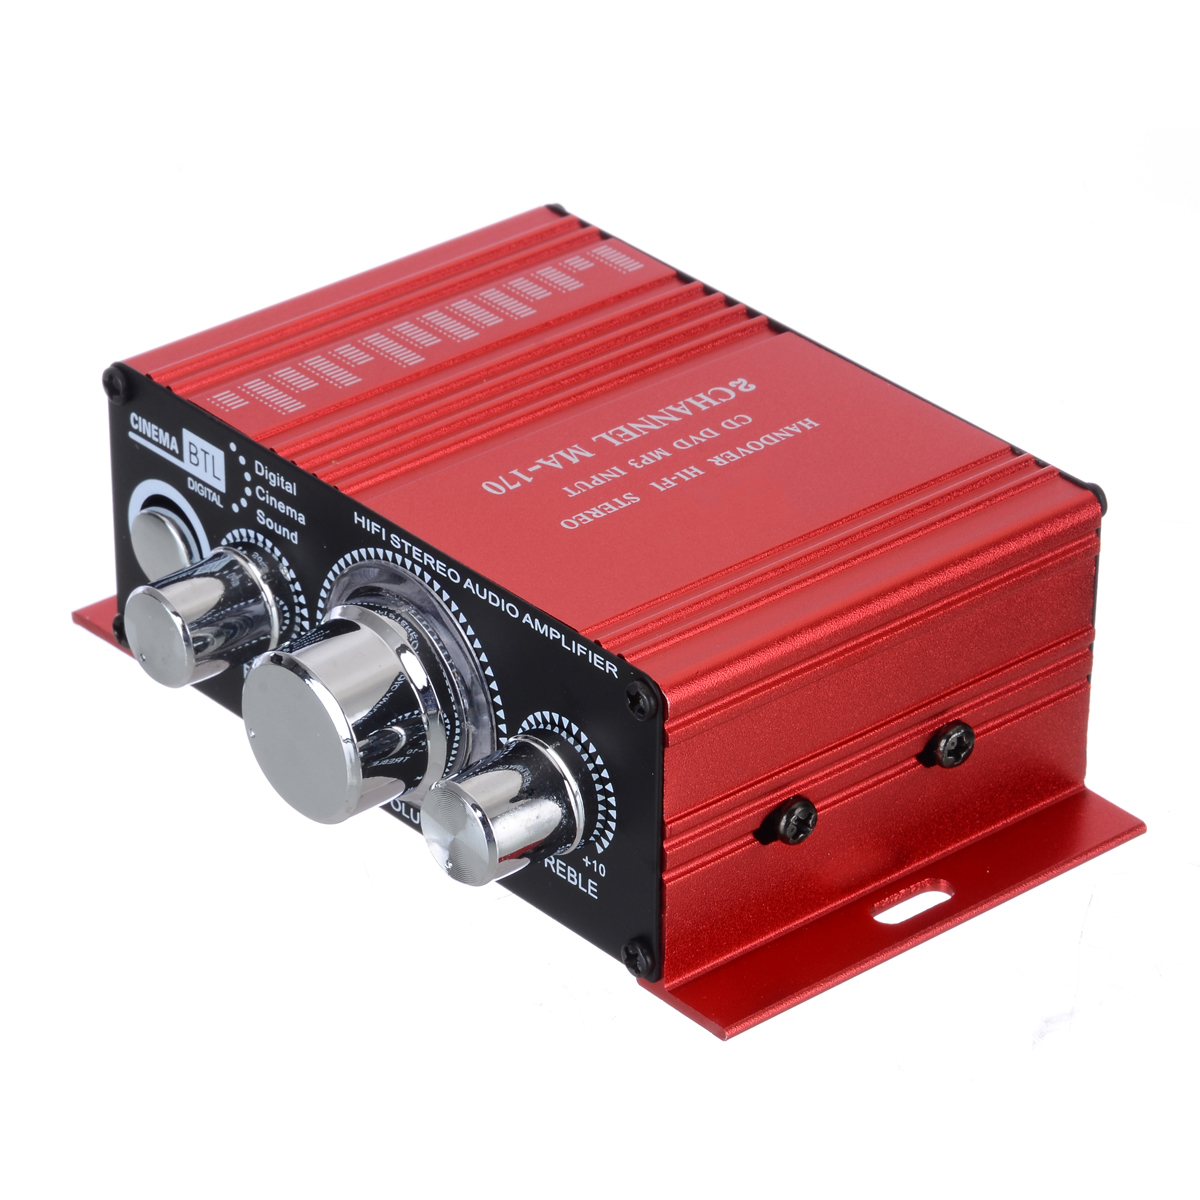 4 Ohm To 16 Ohm Red Stereo HiFi Amplifier MA-170 2 Channel 20Hz To 20KHz AMP For Computer Desktop Speaker